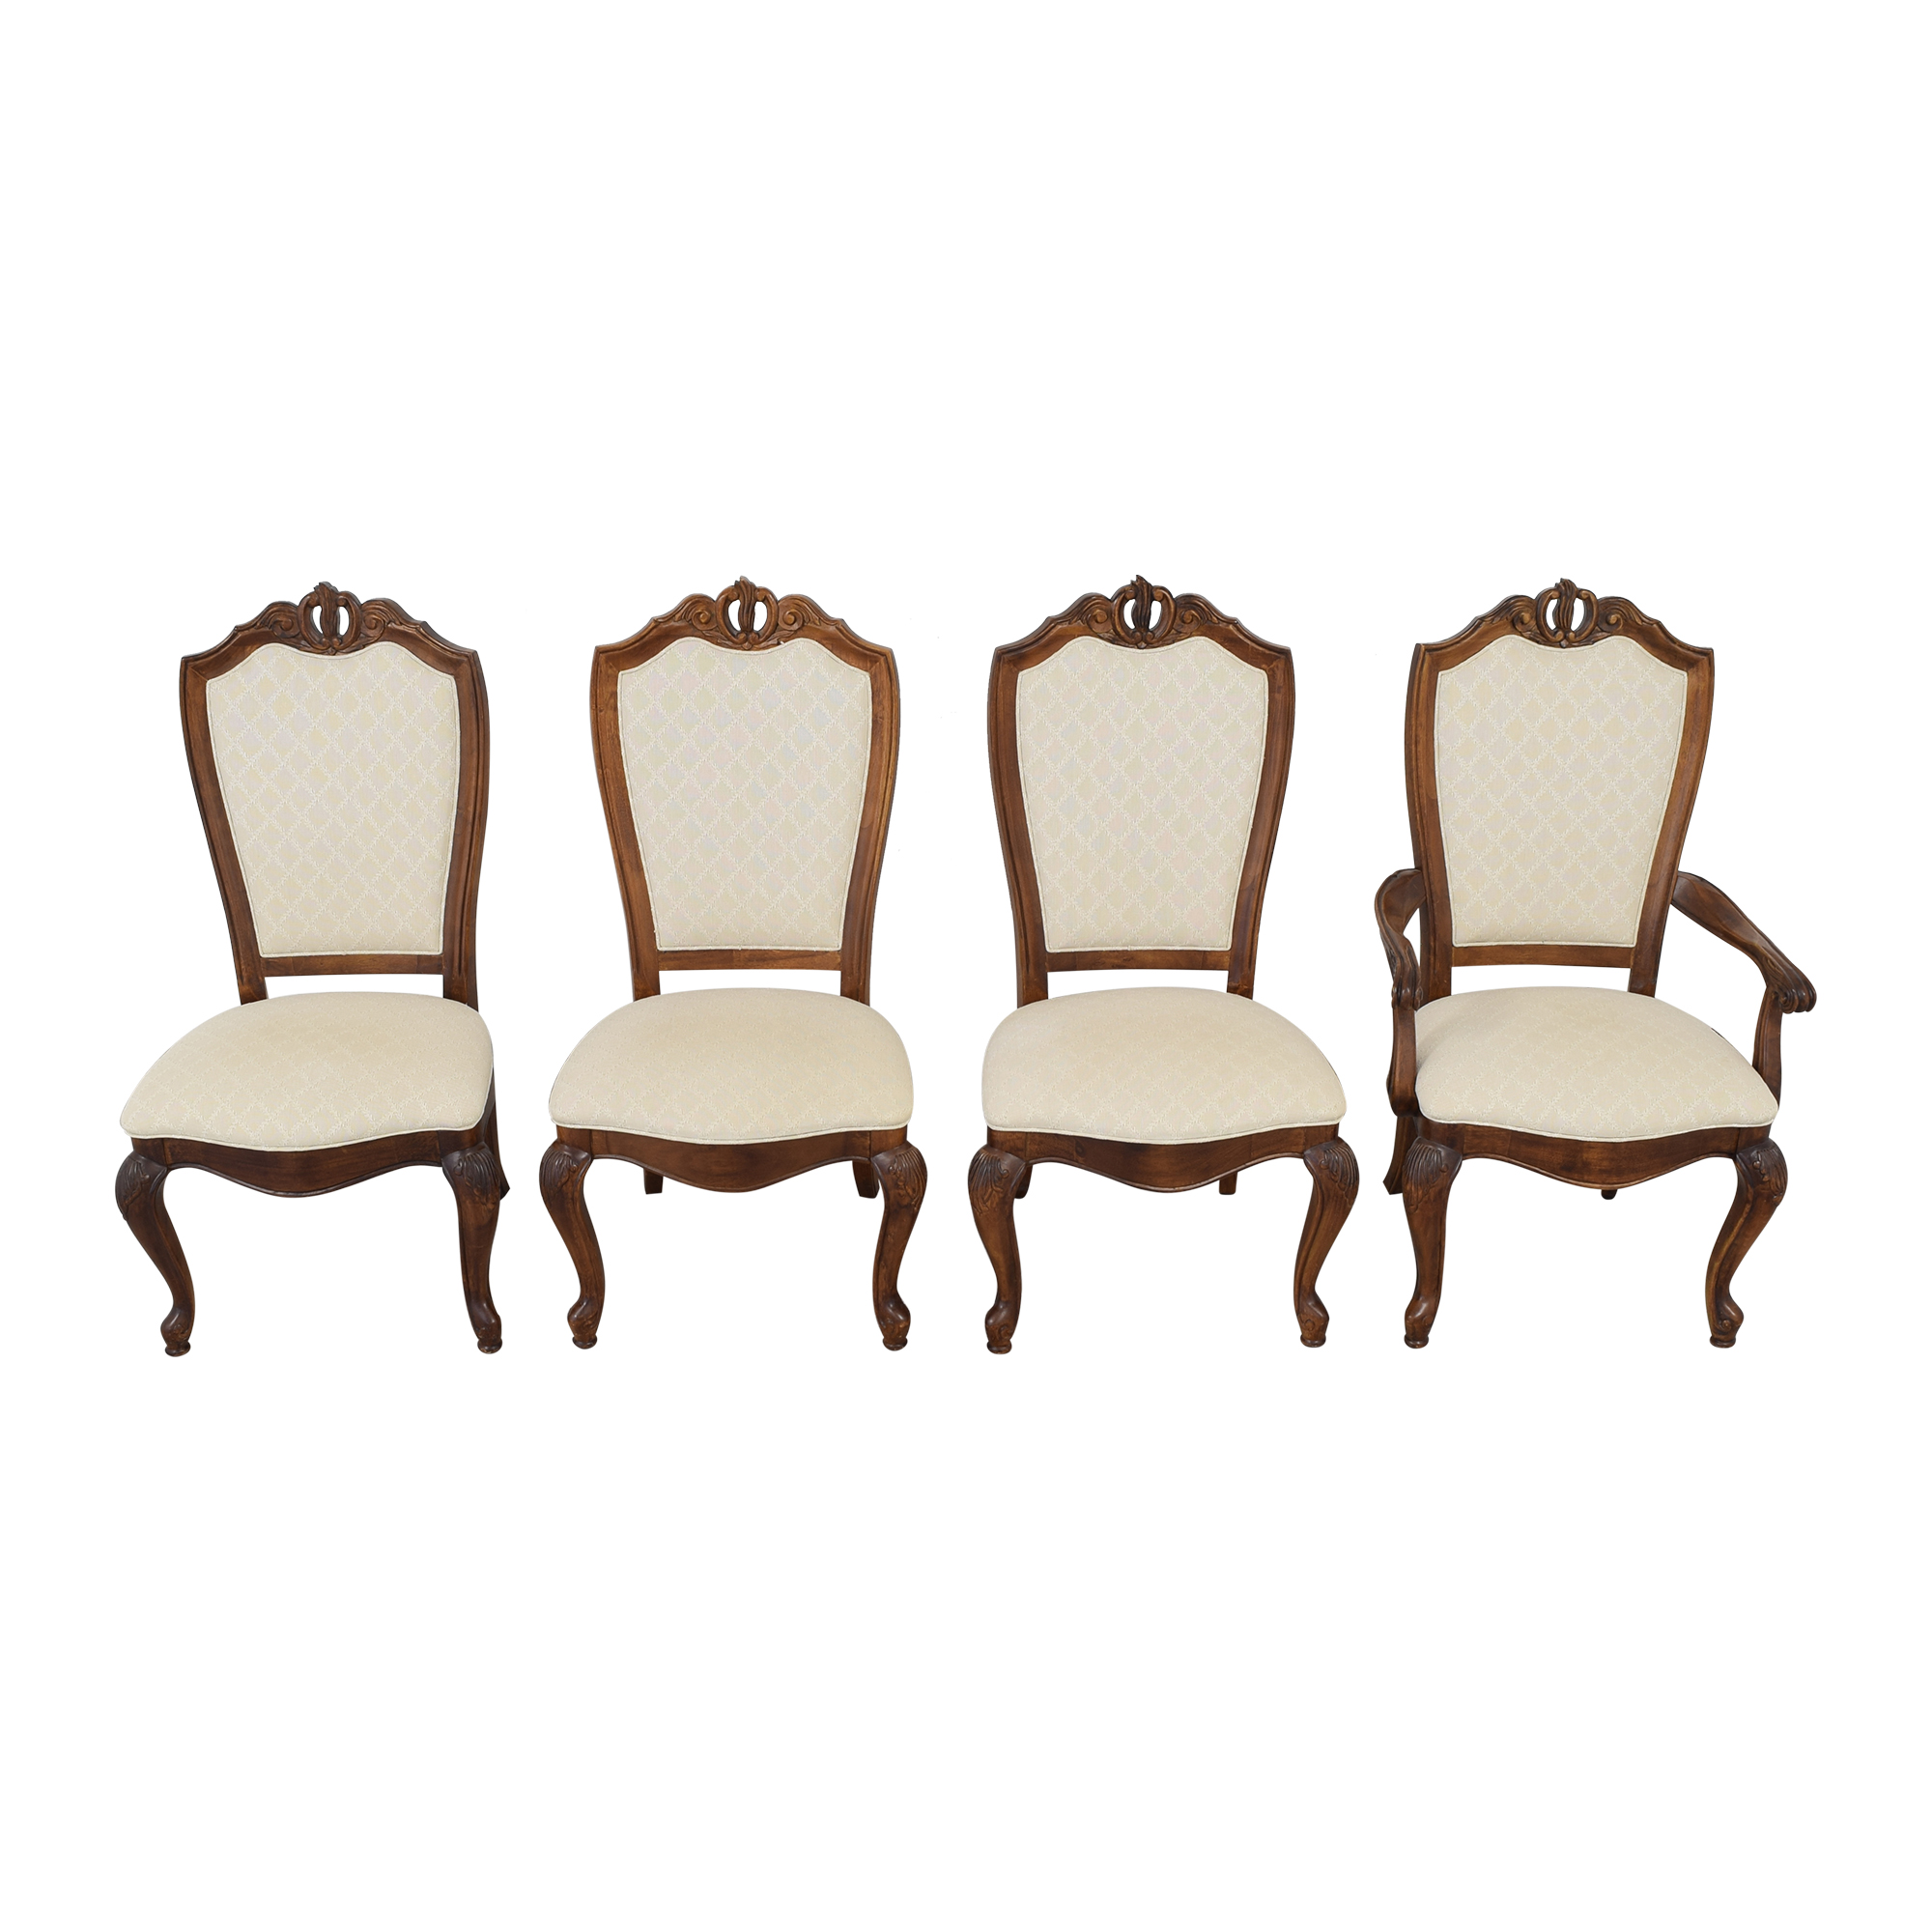 American Drew Bob Mackie for American Drew Dining Chairs nyc